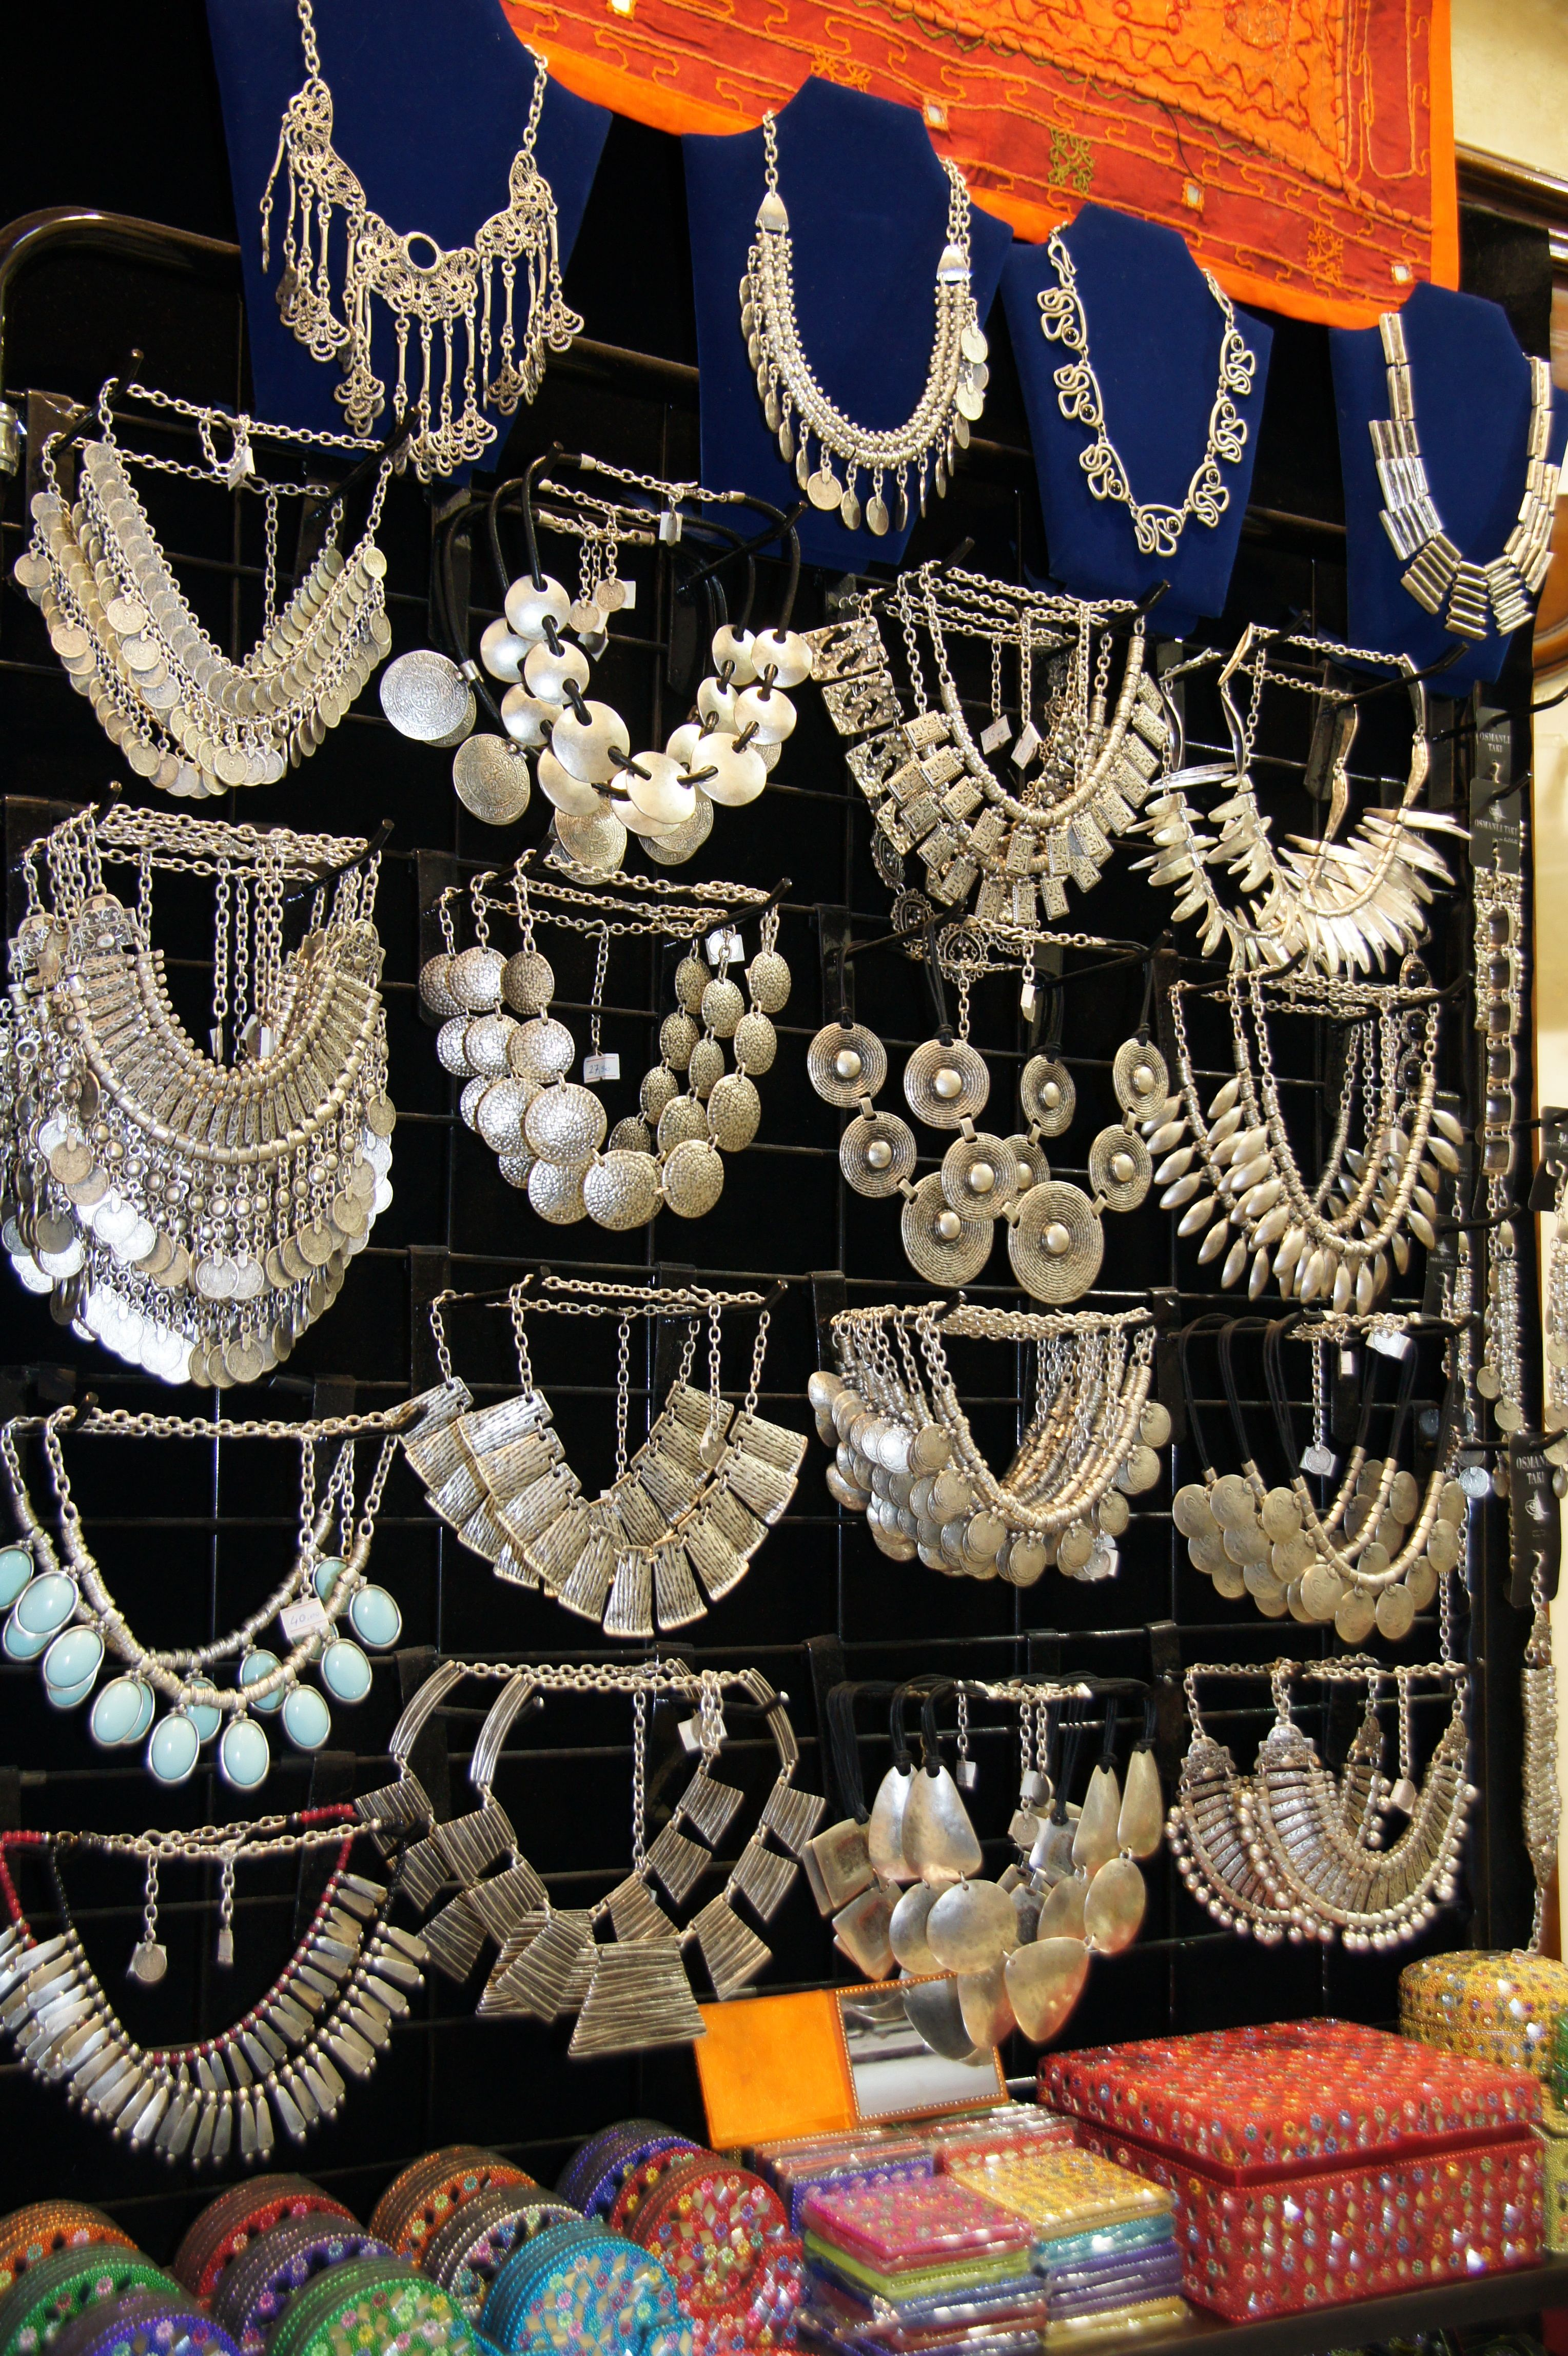 Grand Bazaar - Silver Jewelry (photo by Peggy Mooney)